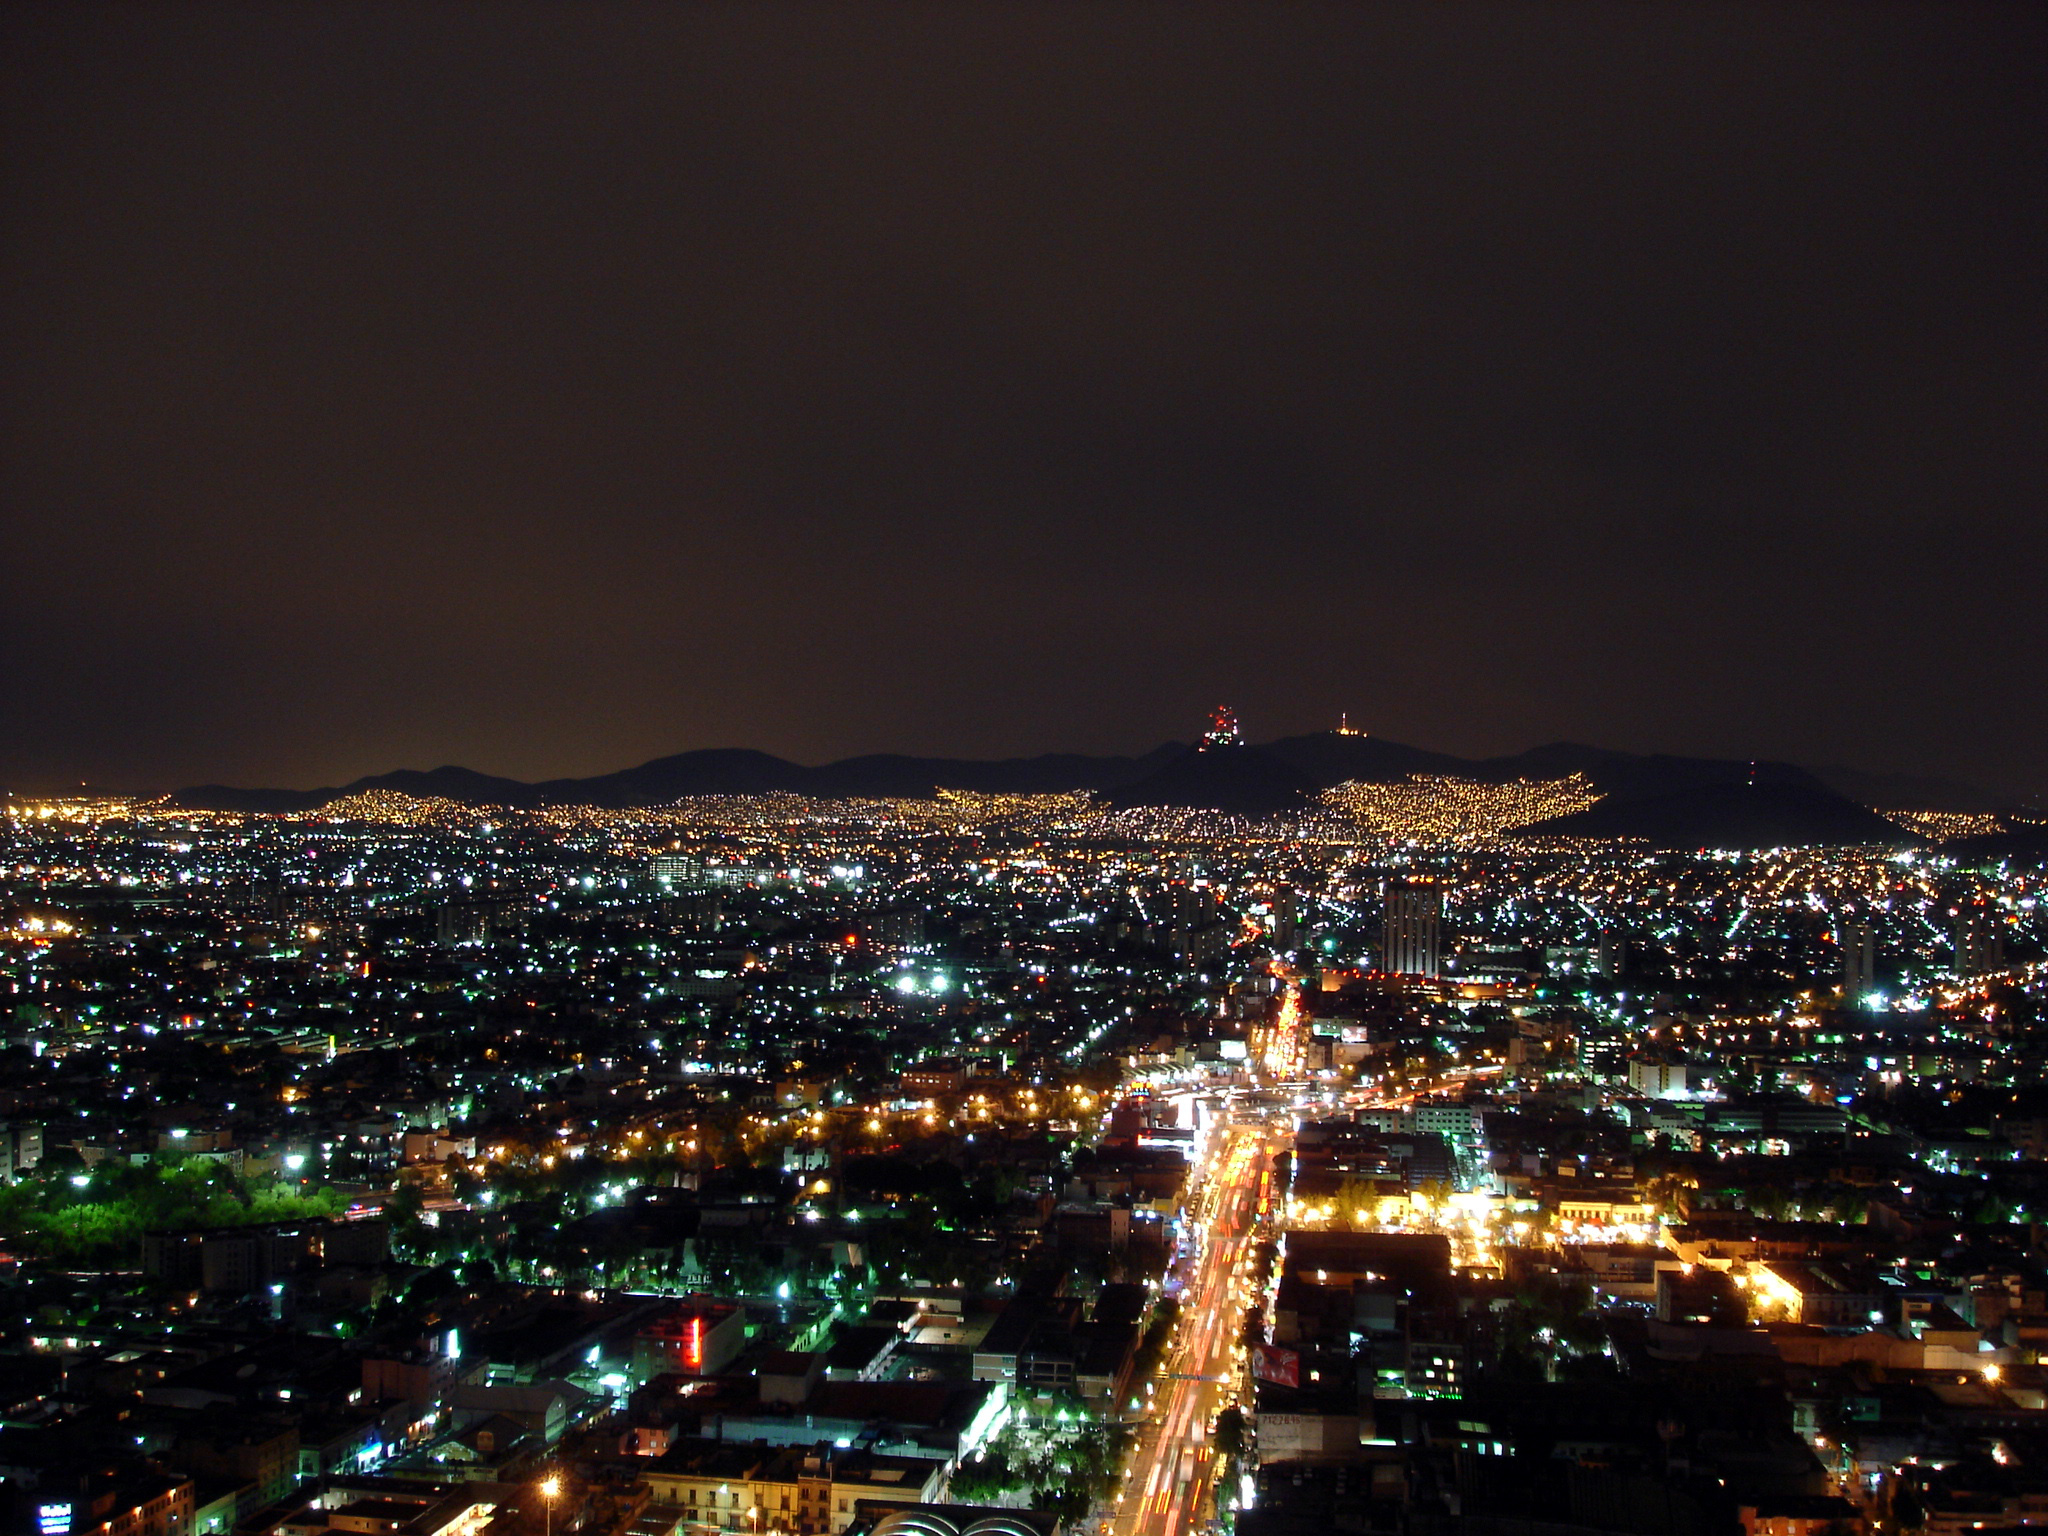 Related Wallpapers. Mexico City ...